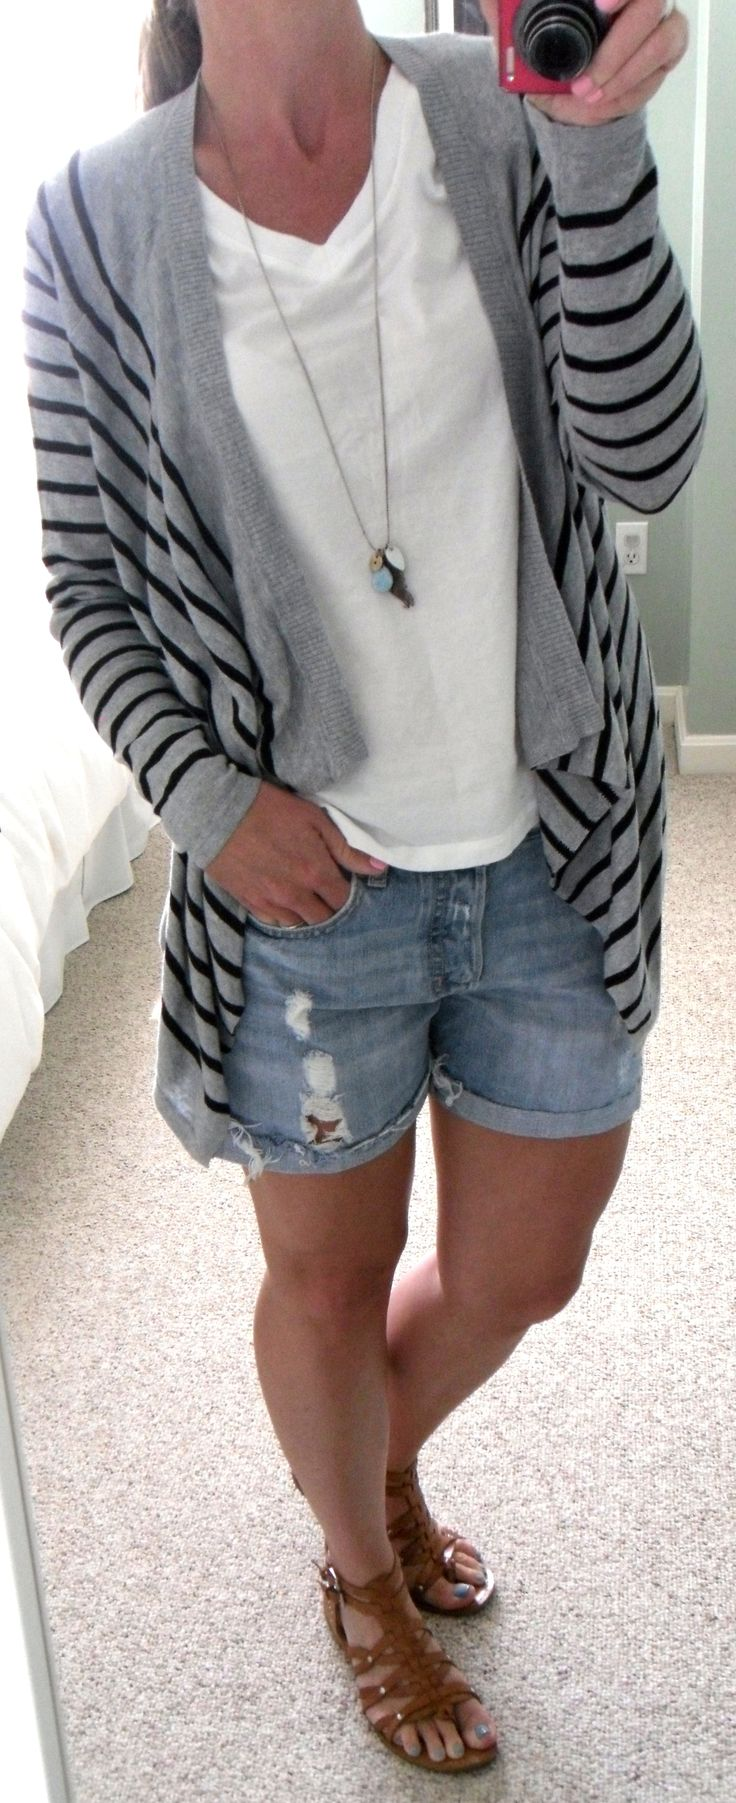 Black sandals old navy - Old Navy Gray And Black Stripe Draped Cardigan White V Neck T Shirt H M Distressed Boyfriend Shorts Guess Gladiator Sandals Ae Necklace